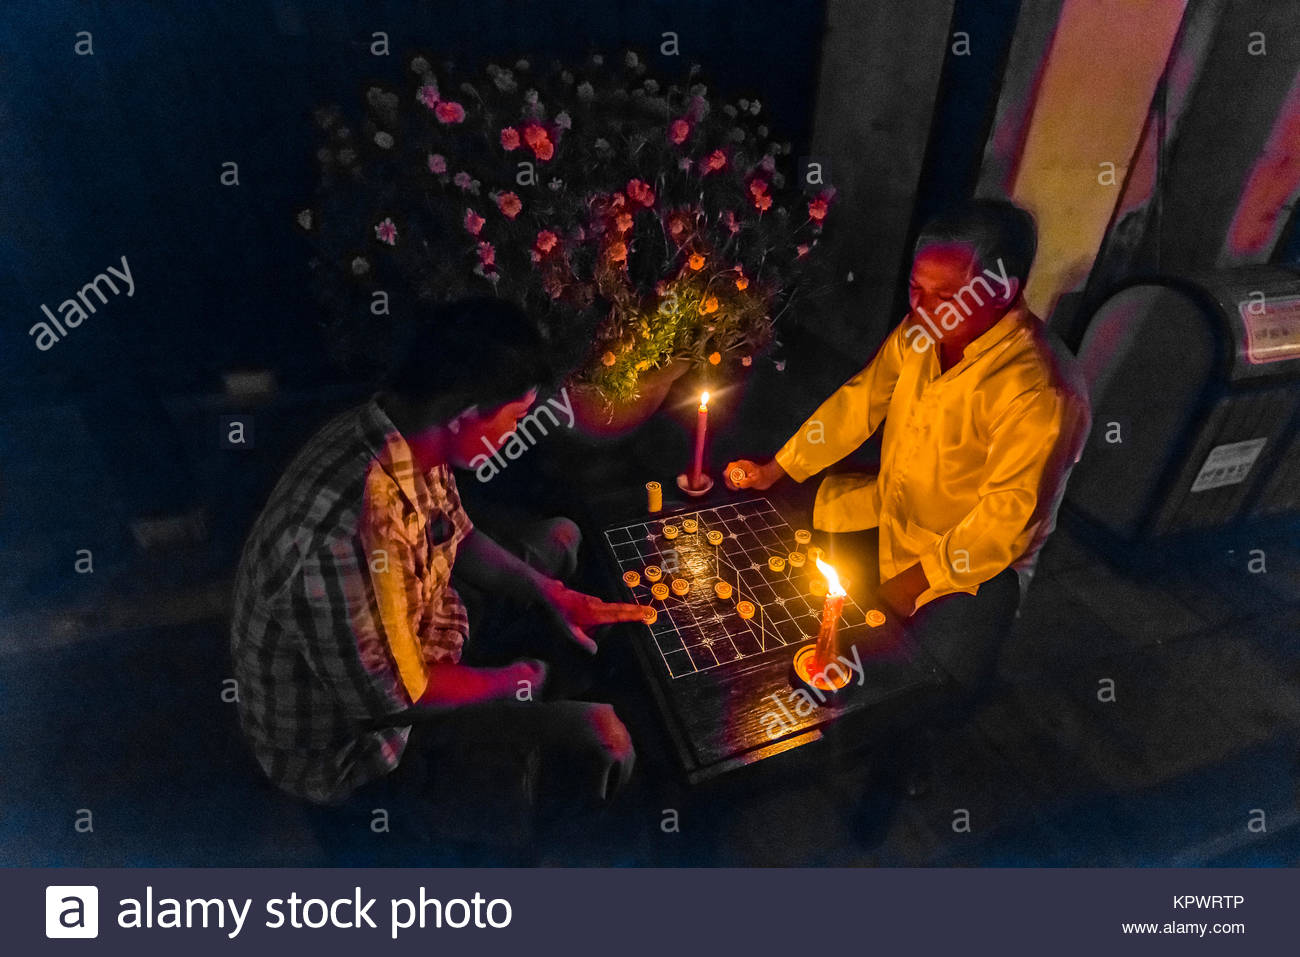 Men playing checkers by candlelight during the monthly Hoi An Full Moon Lantern Festival, Hoi An, Vietnam. - Stock Image